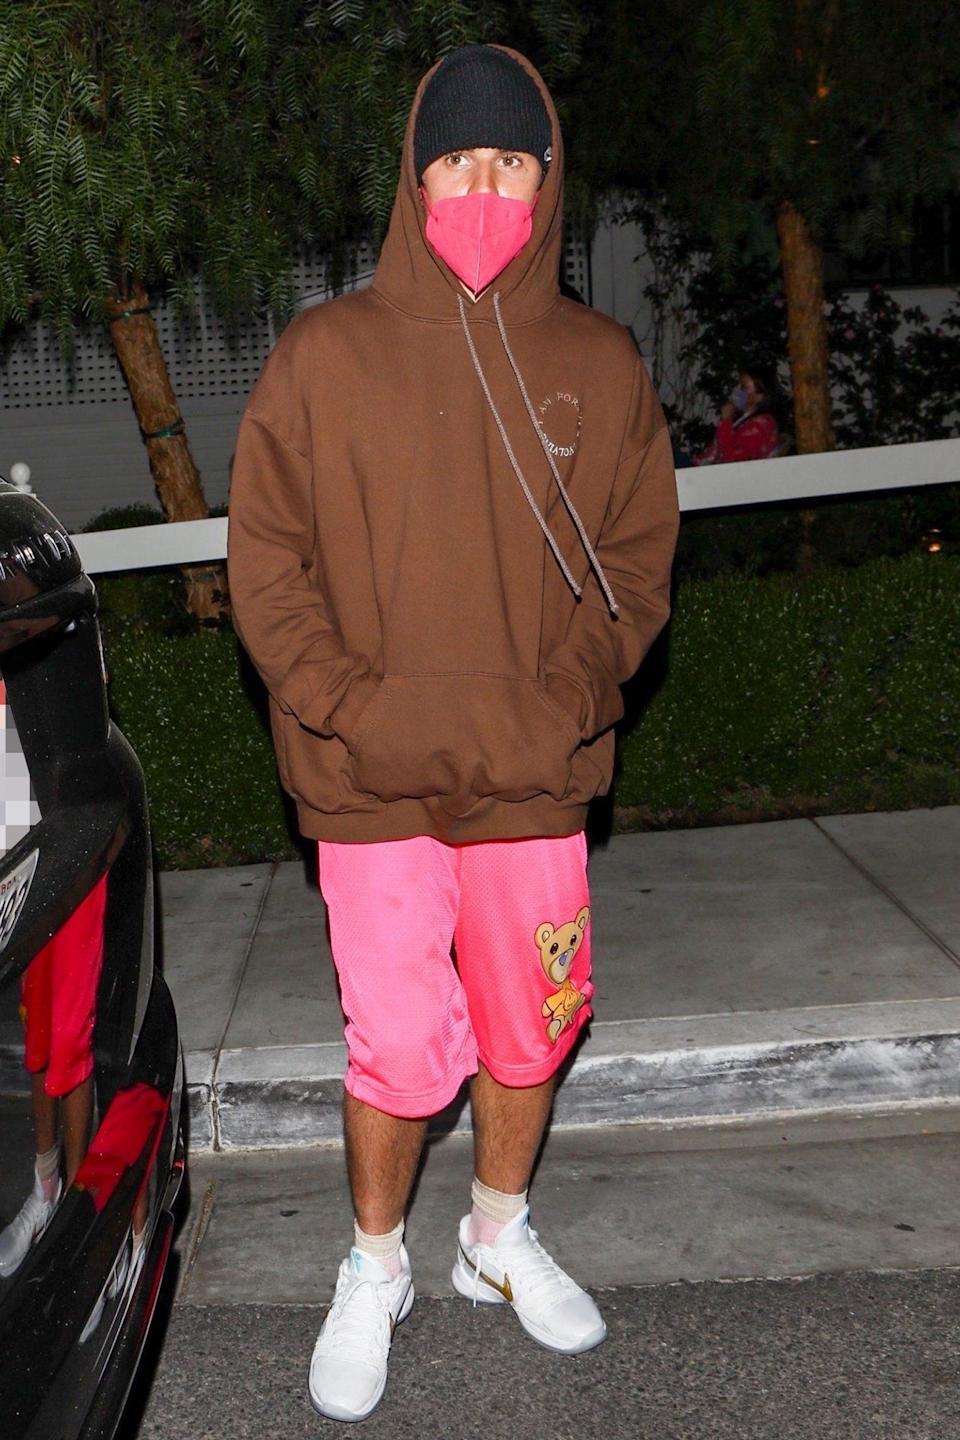 <p>Justin Bieber and wife Hailey (not pictured) leave dinner at the San Vicente Bungalows in West Hollywood on Wednesday night. </p>